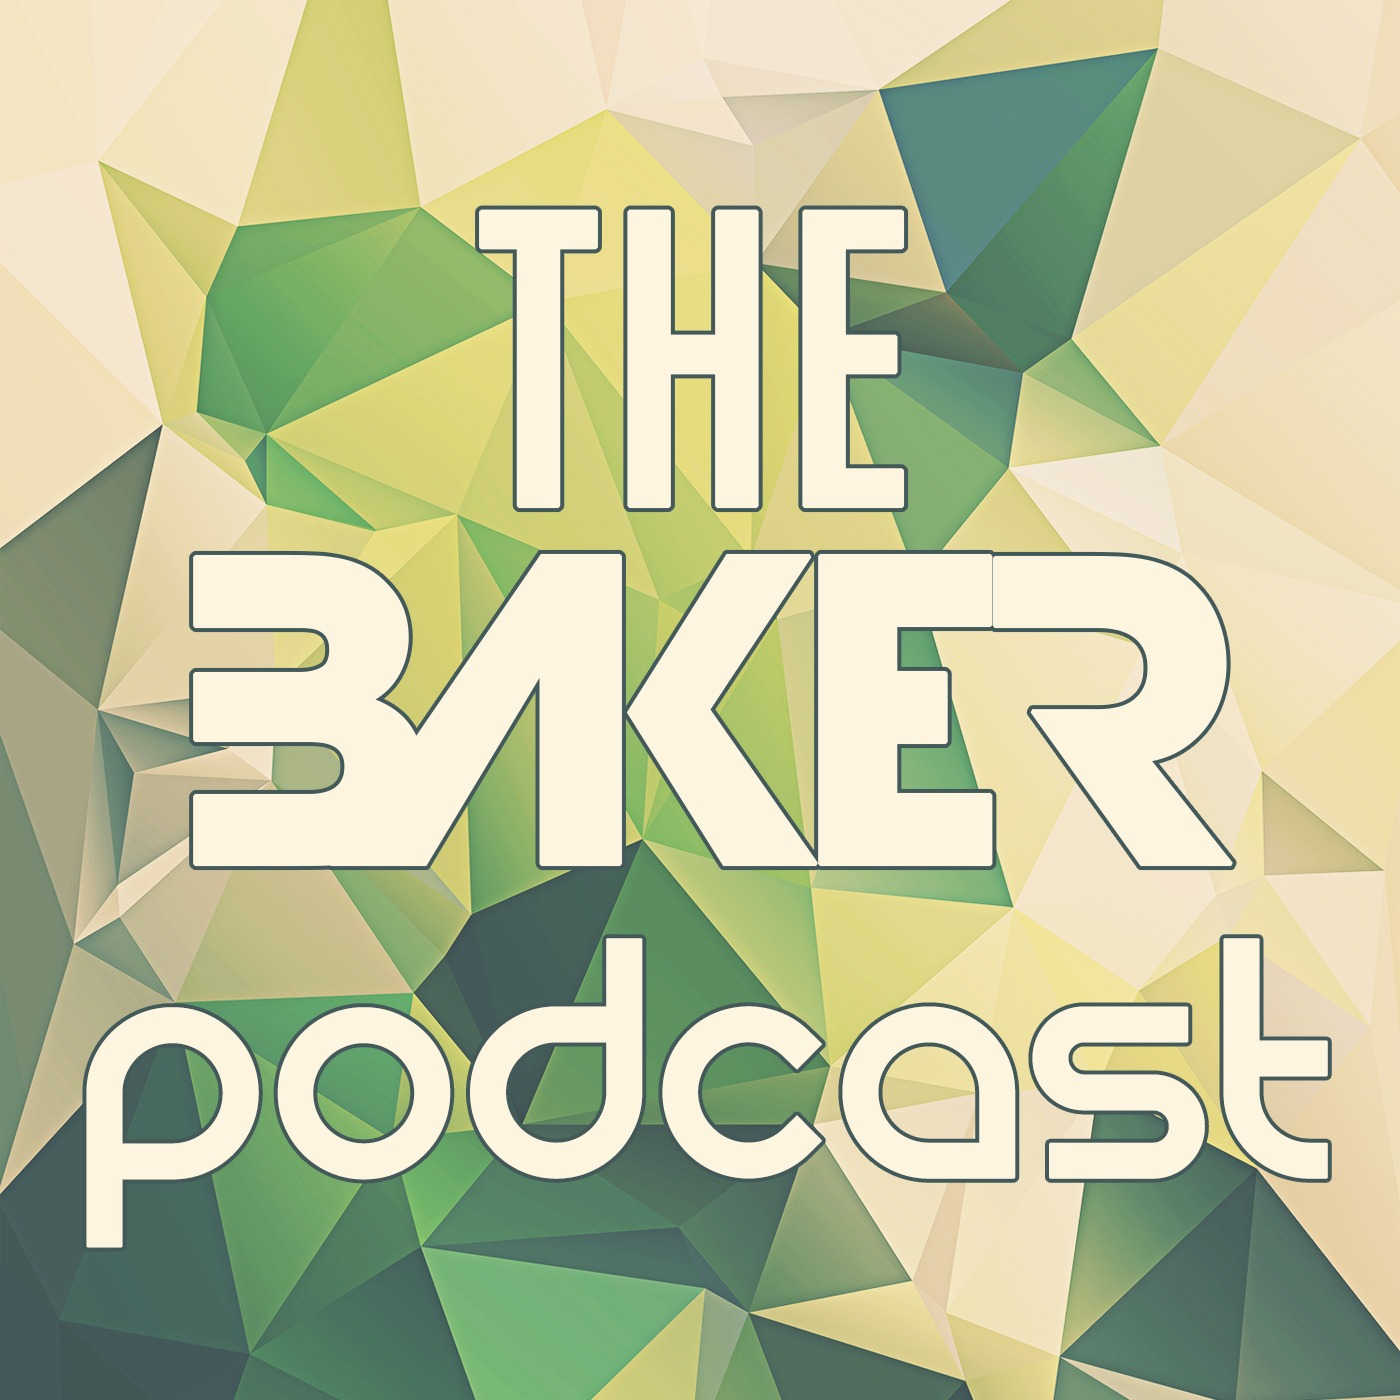 BEN BAKER PODCAST